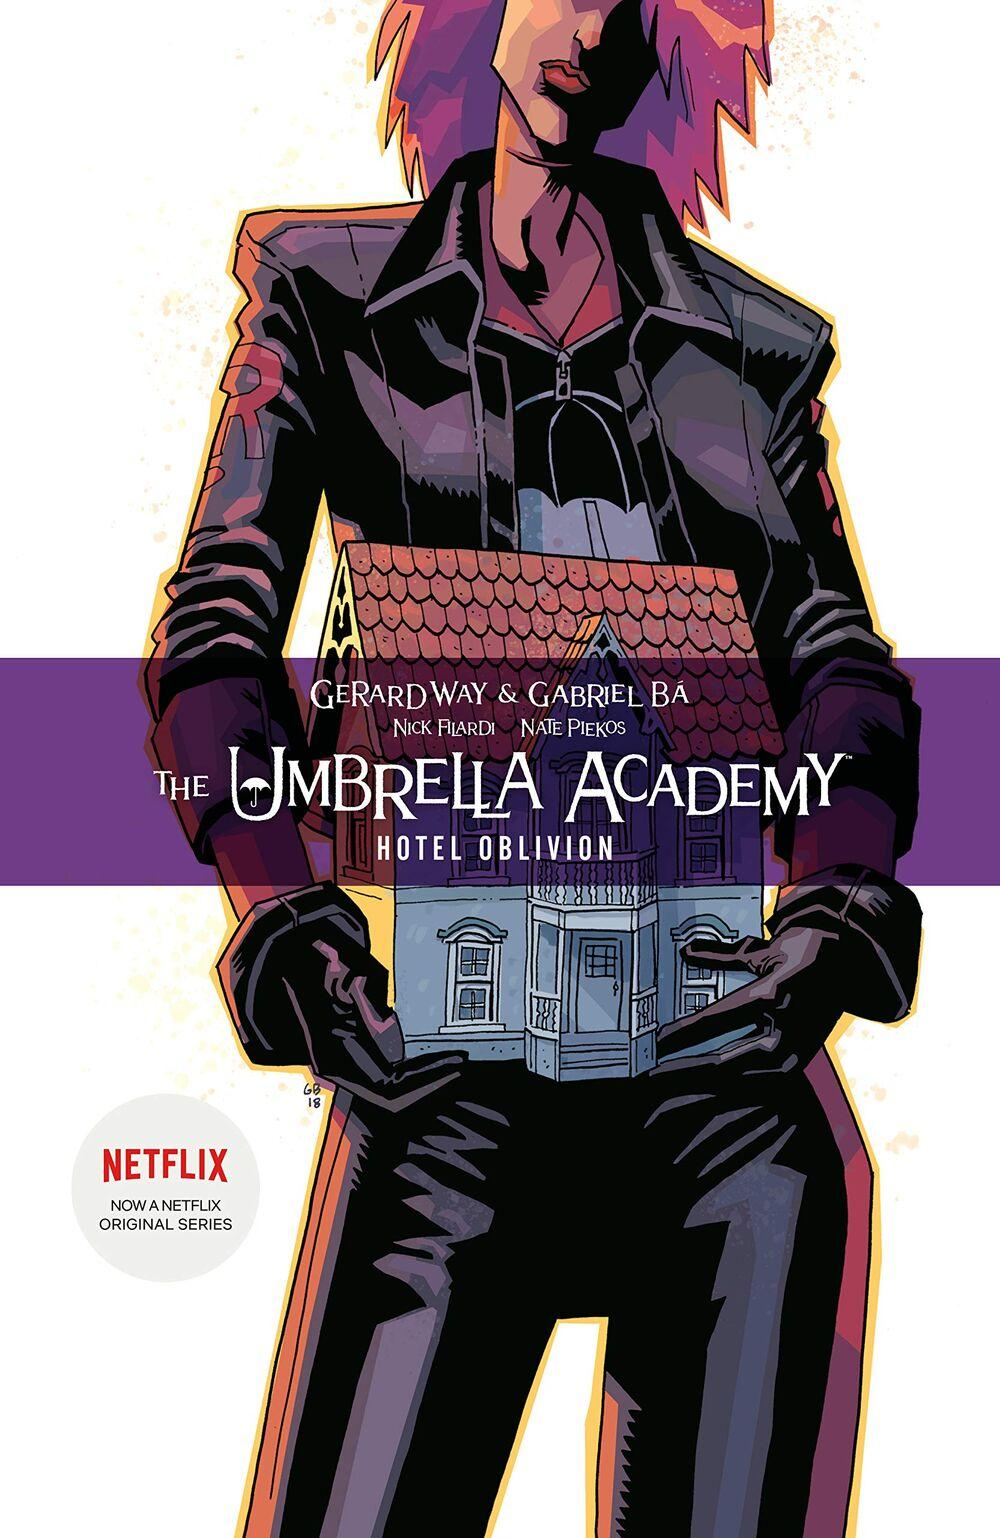 https://vignette.wikia.nocookie.net/umbrellaacademy/images/7/7f/The_Umbrella_Academy-_Hotel_Oblivion_cover.jpg/revision/latest/scale-to-width-down/1000?cb=20190908231905